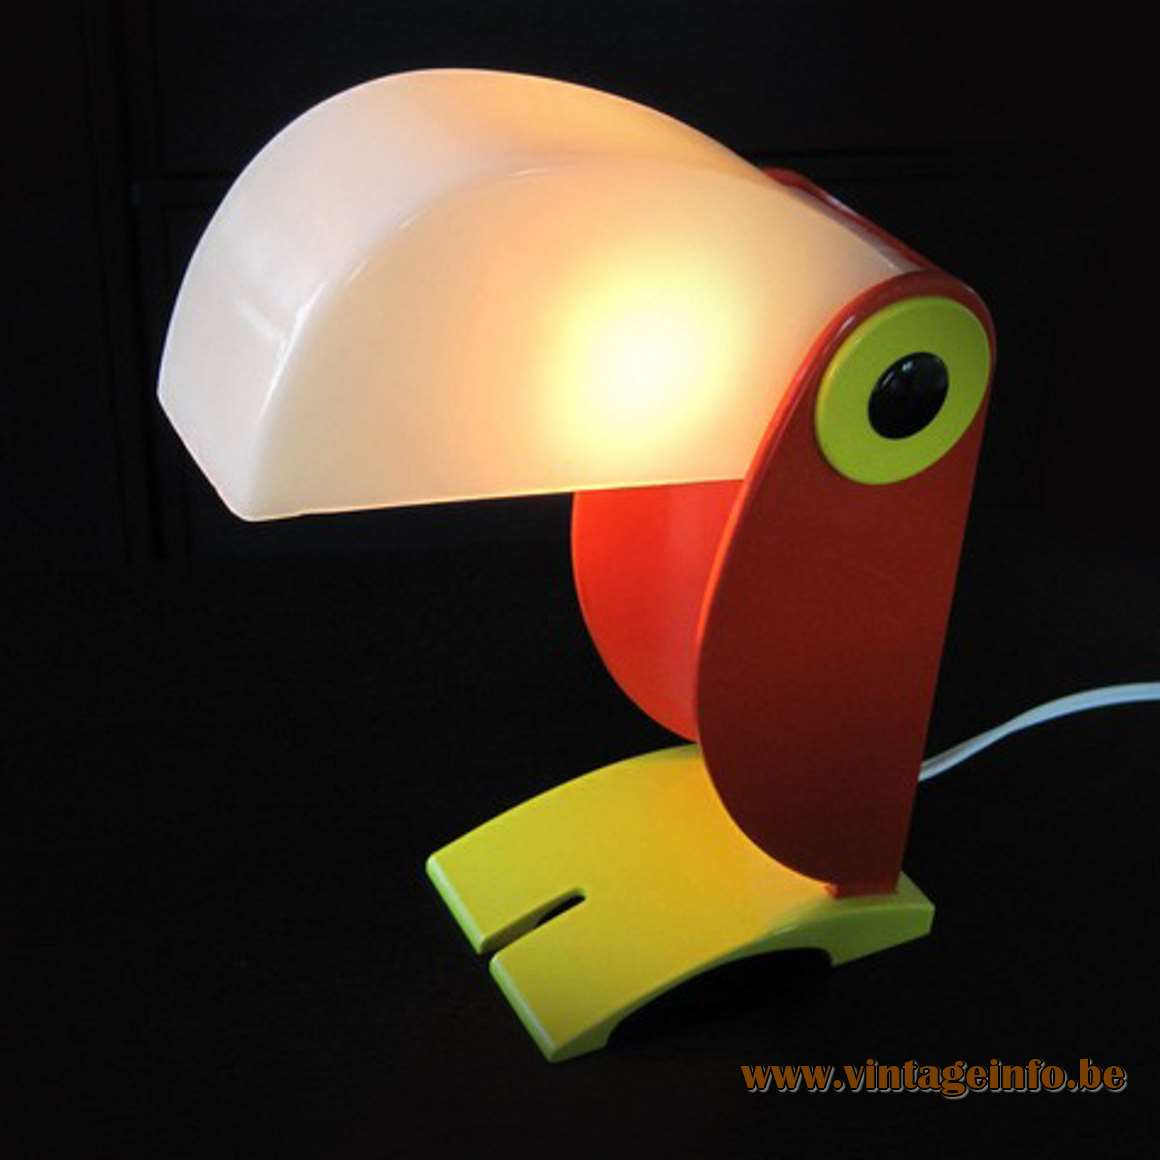 Old Timer Ferrari Toucan Table Lamp red yellow white plastic OTF